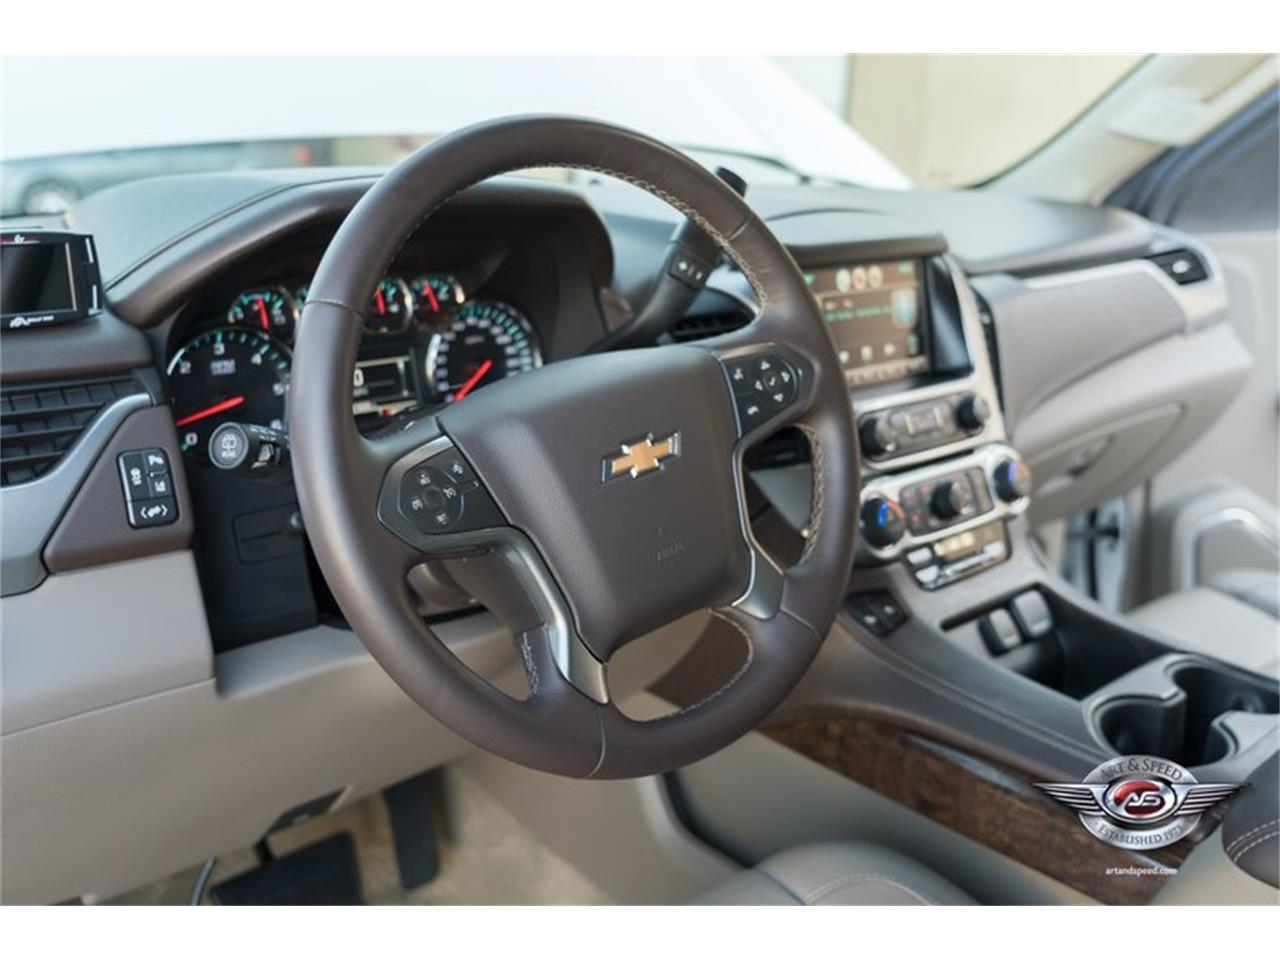 2015 Chevrolet Suburban for sale in Collierville, TN – photo 72